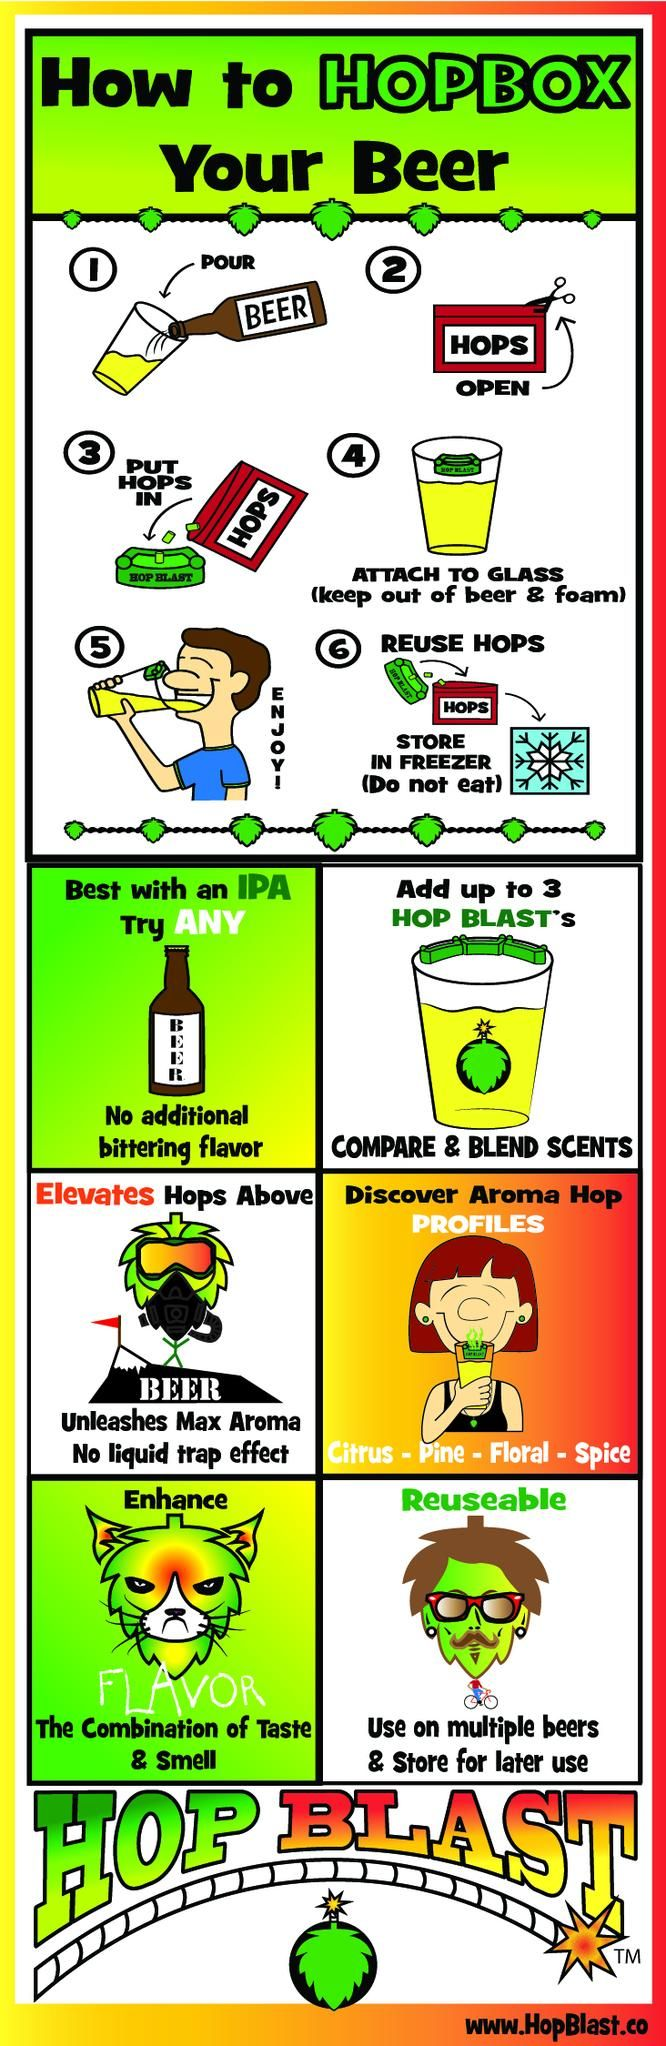 It's #InternationalBeerDay AND #pauhana #Friday? More reasons to hopbox your beer! #craftbeer #beer #ale #hops